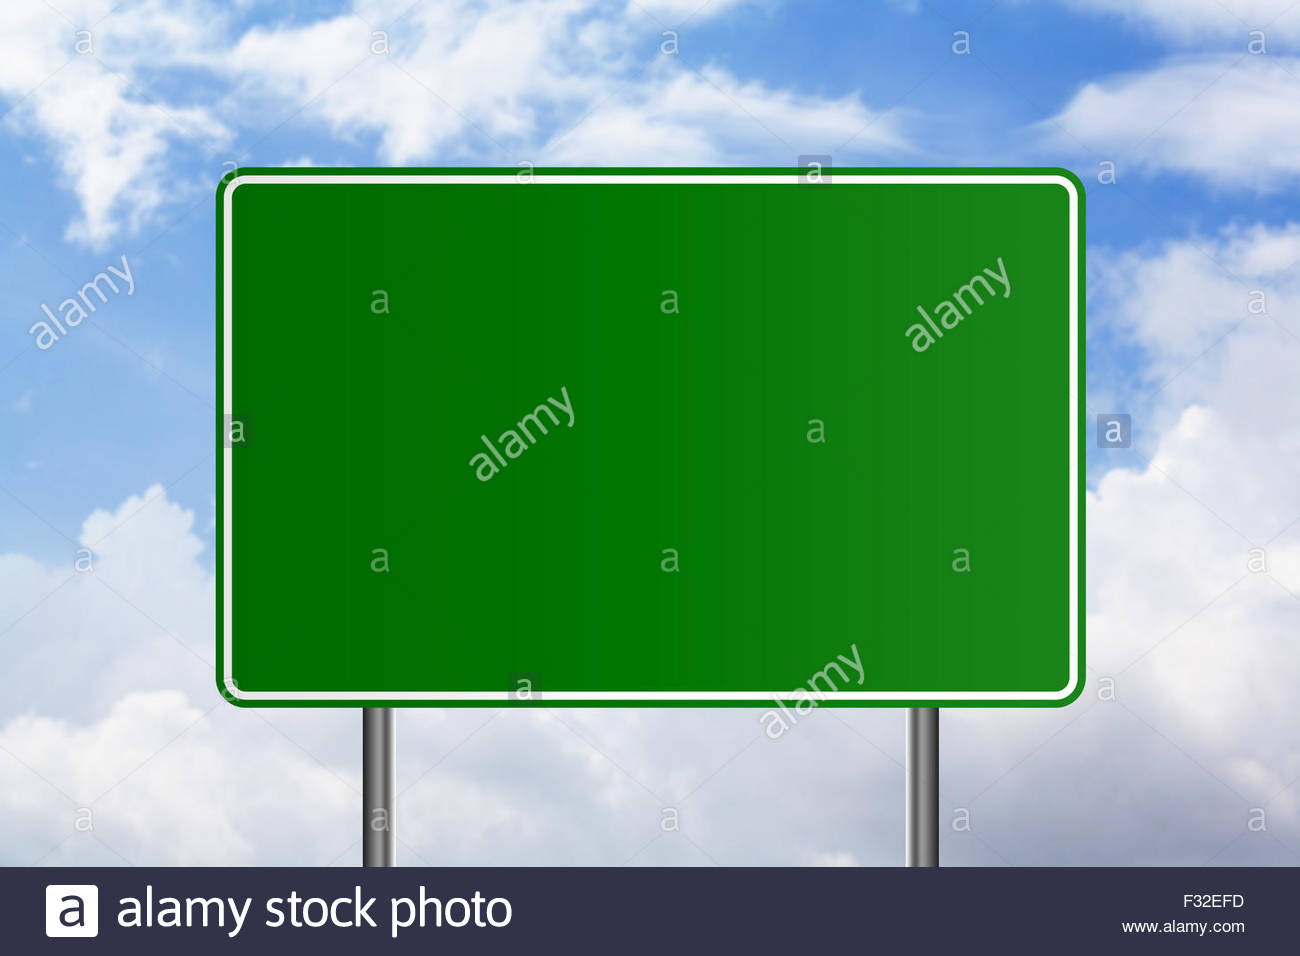 A Blank Signboard For Design Template Stock Photo 87951121